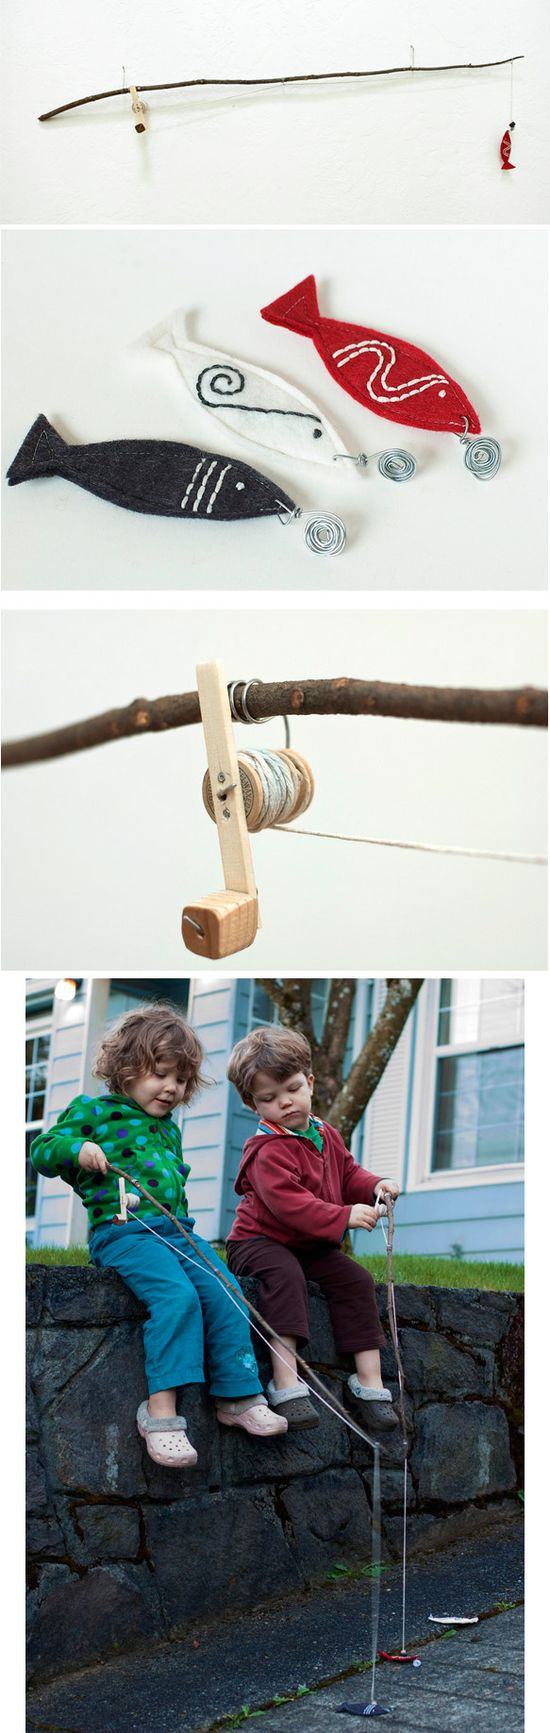 26. This magnetic fishing pole is a super clever idea.